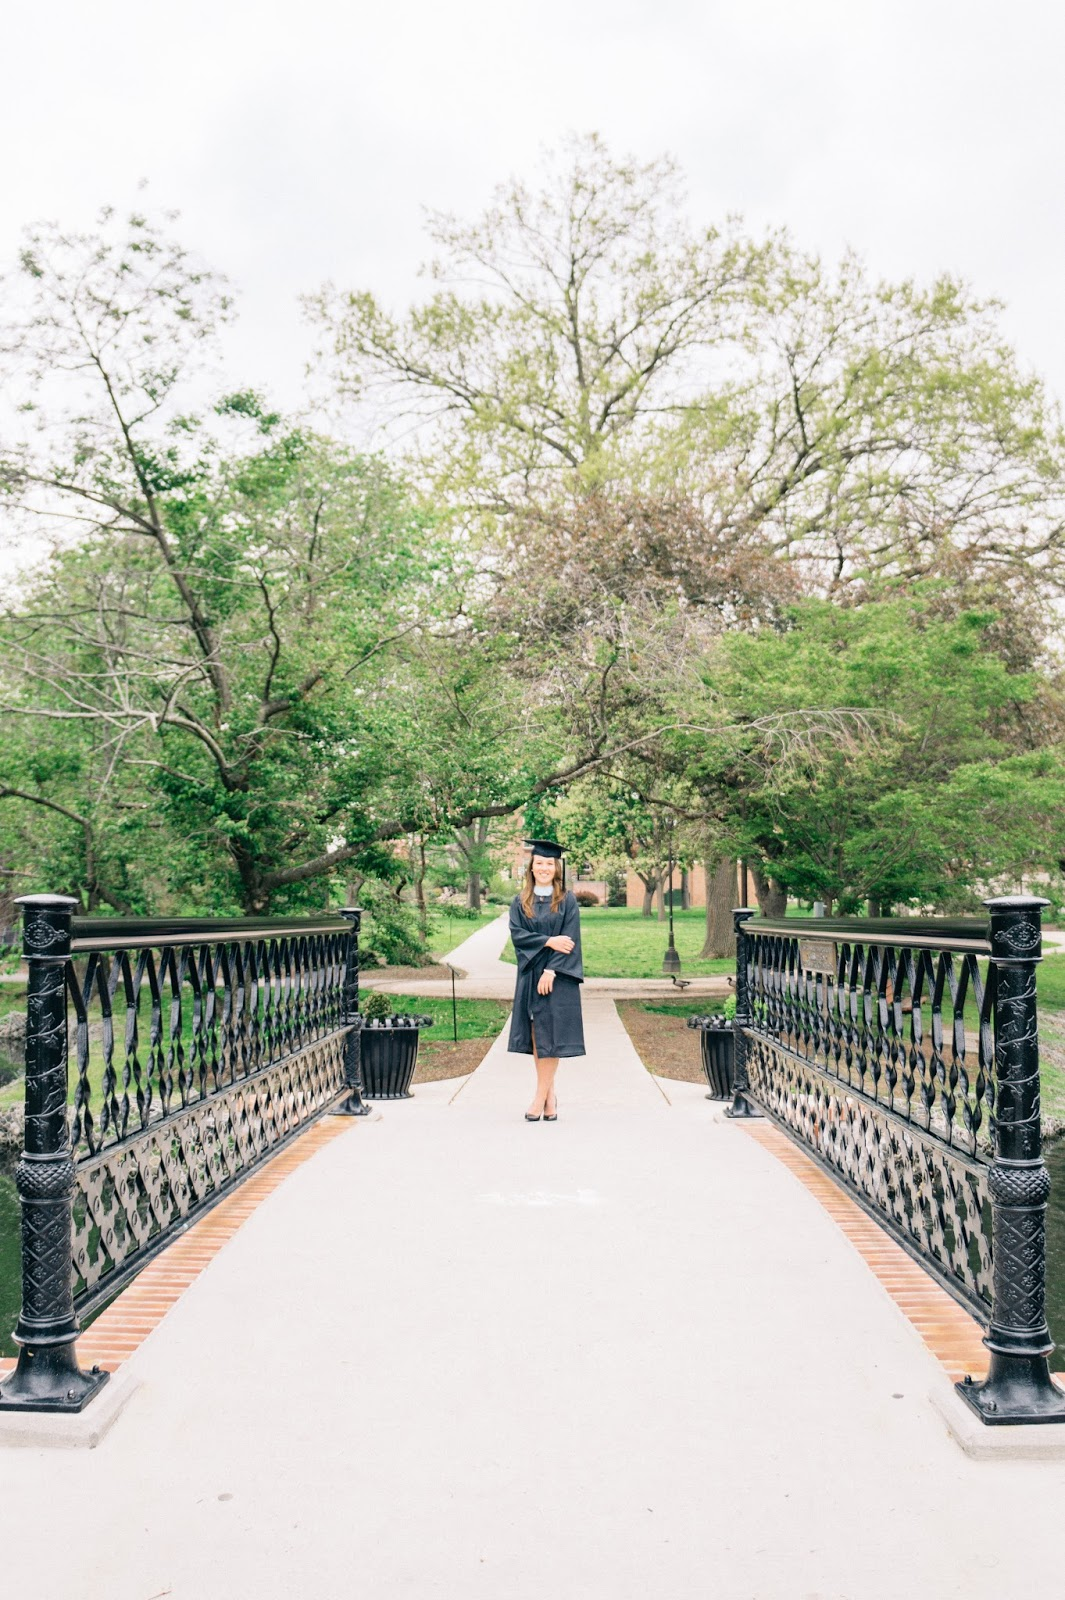 Graduate on the end of a bridge with trees framing the shot.